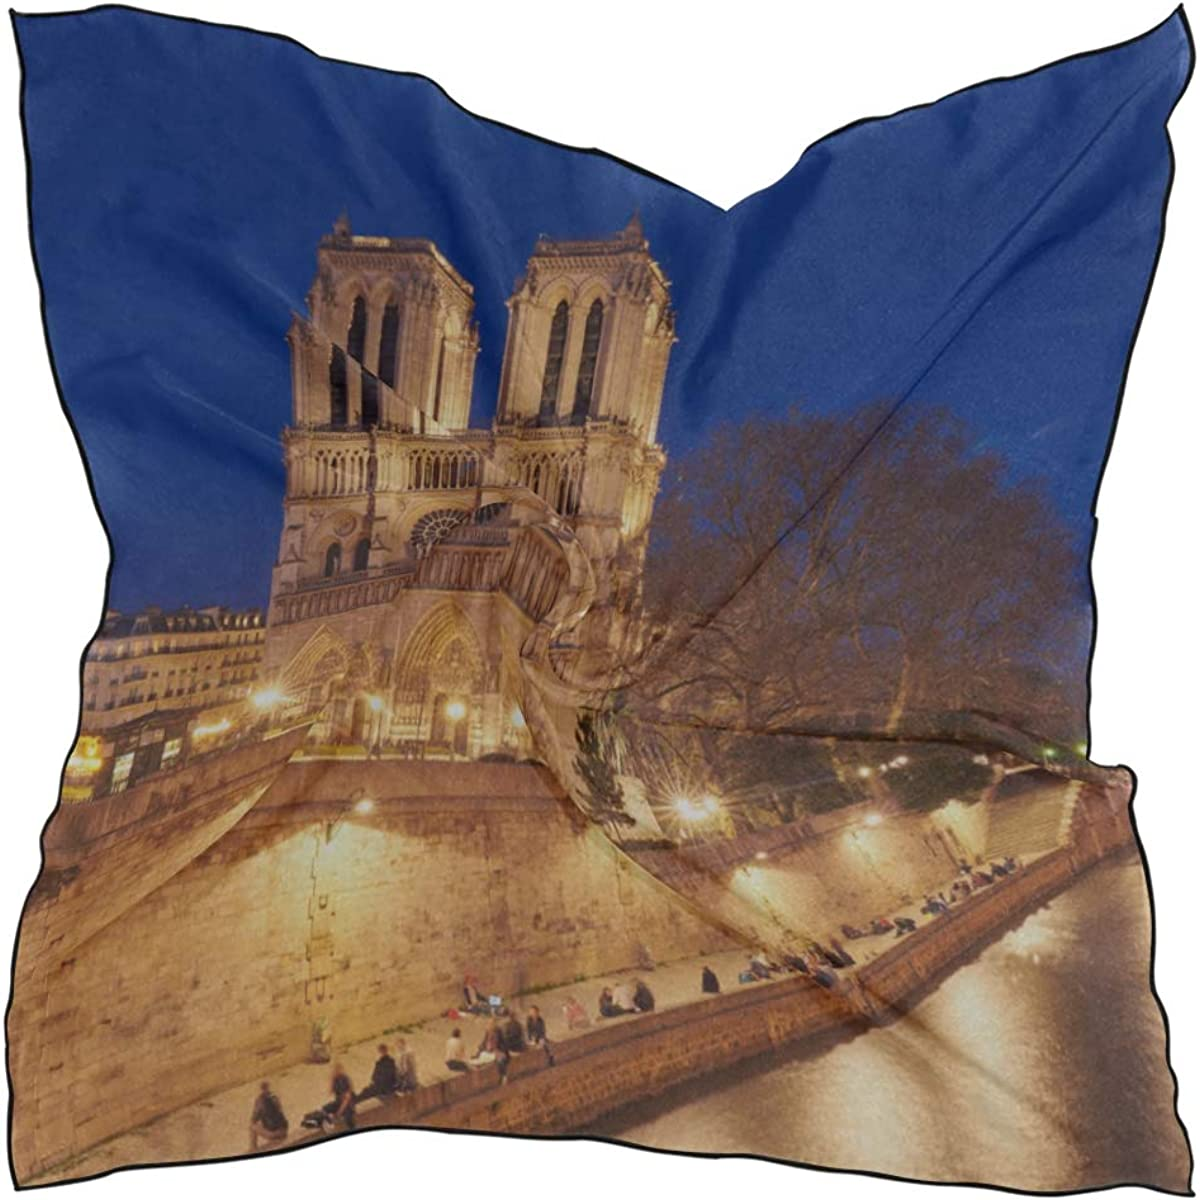 Soft Polyester Silk Scarf For Head Fashion Print Classic Church Notre Dame De Paris Square Fashion Scarf Pashima Scarfs For Women Scarf Lightweight Multiple Ways Of Wearing Daily Decor